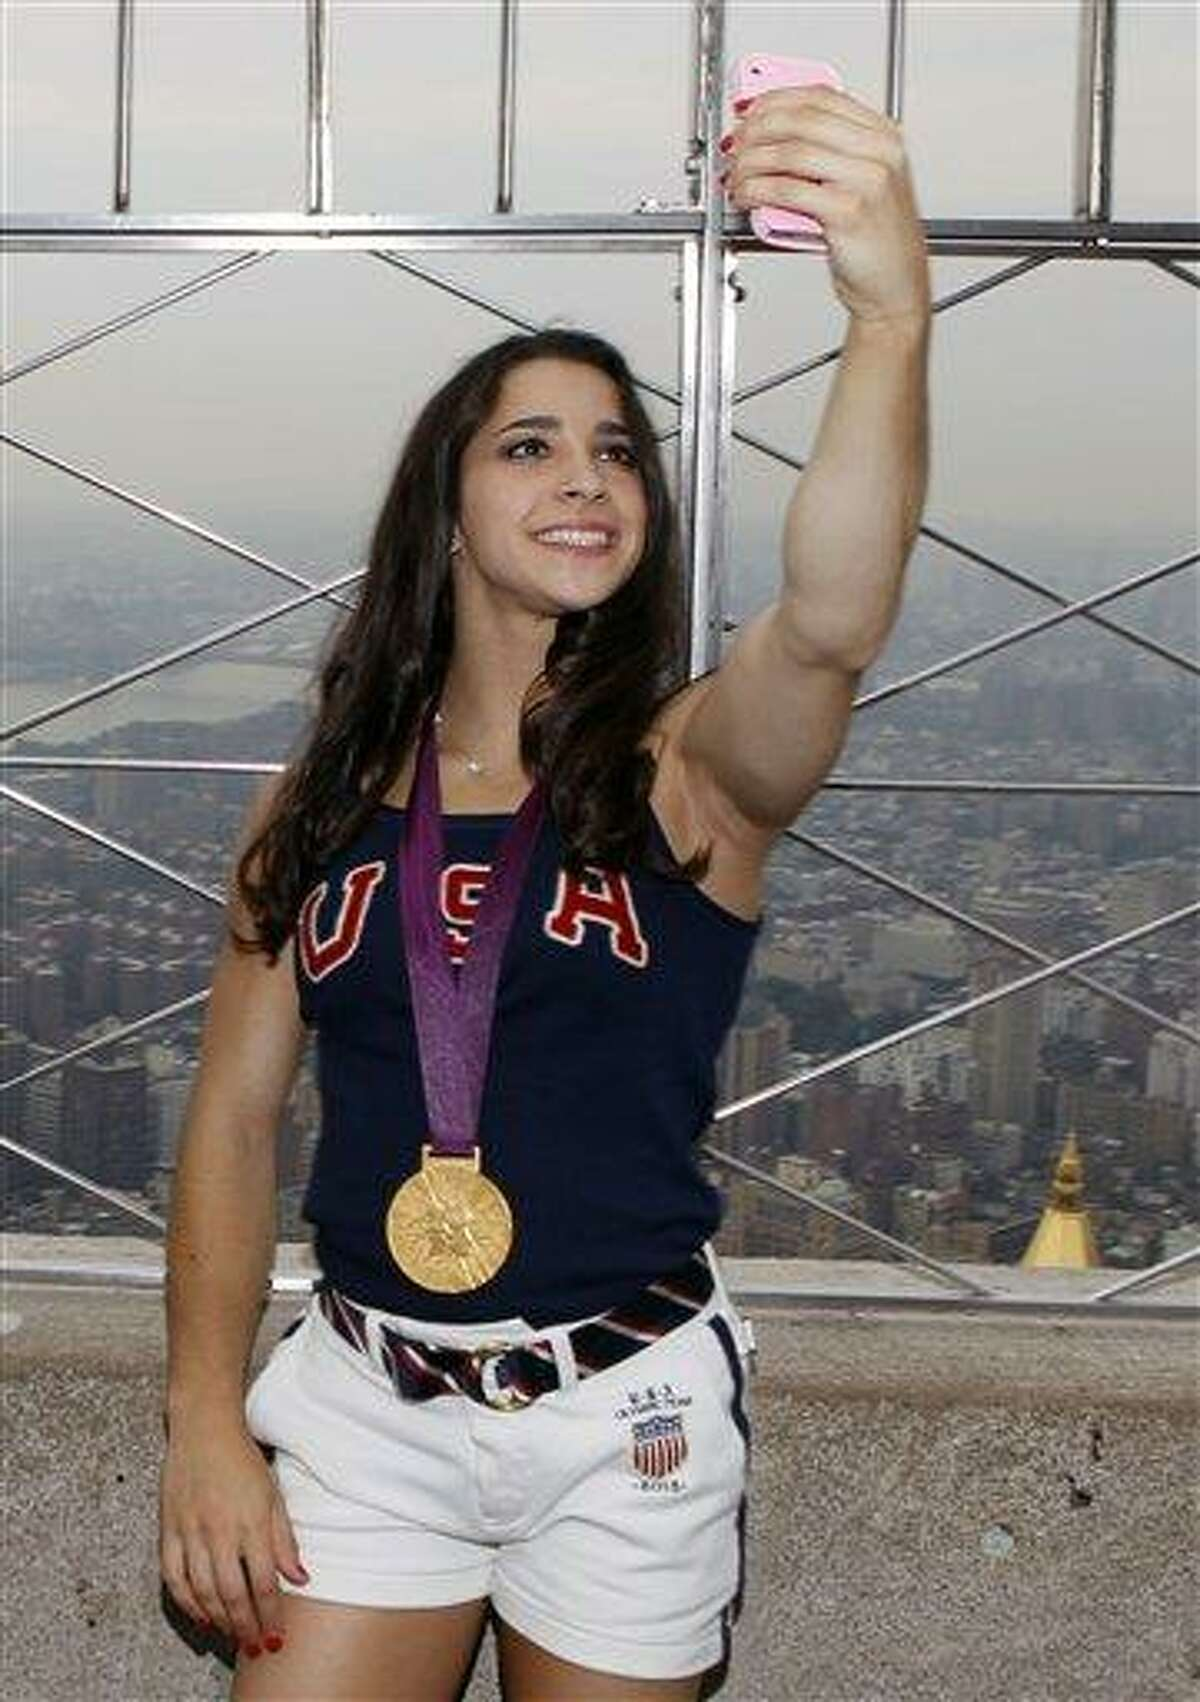 Aly Raisman, of the 2012 US Women's Gymnastics Olympic Team, takes a photo of herself on the observation deck of the Empire State Building earlier this week. She recently returned home to a warm welcome in Massachusetts. Associated Press